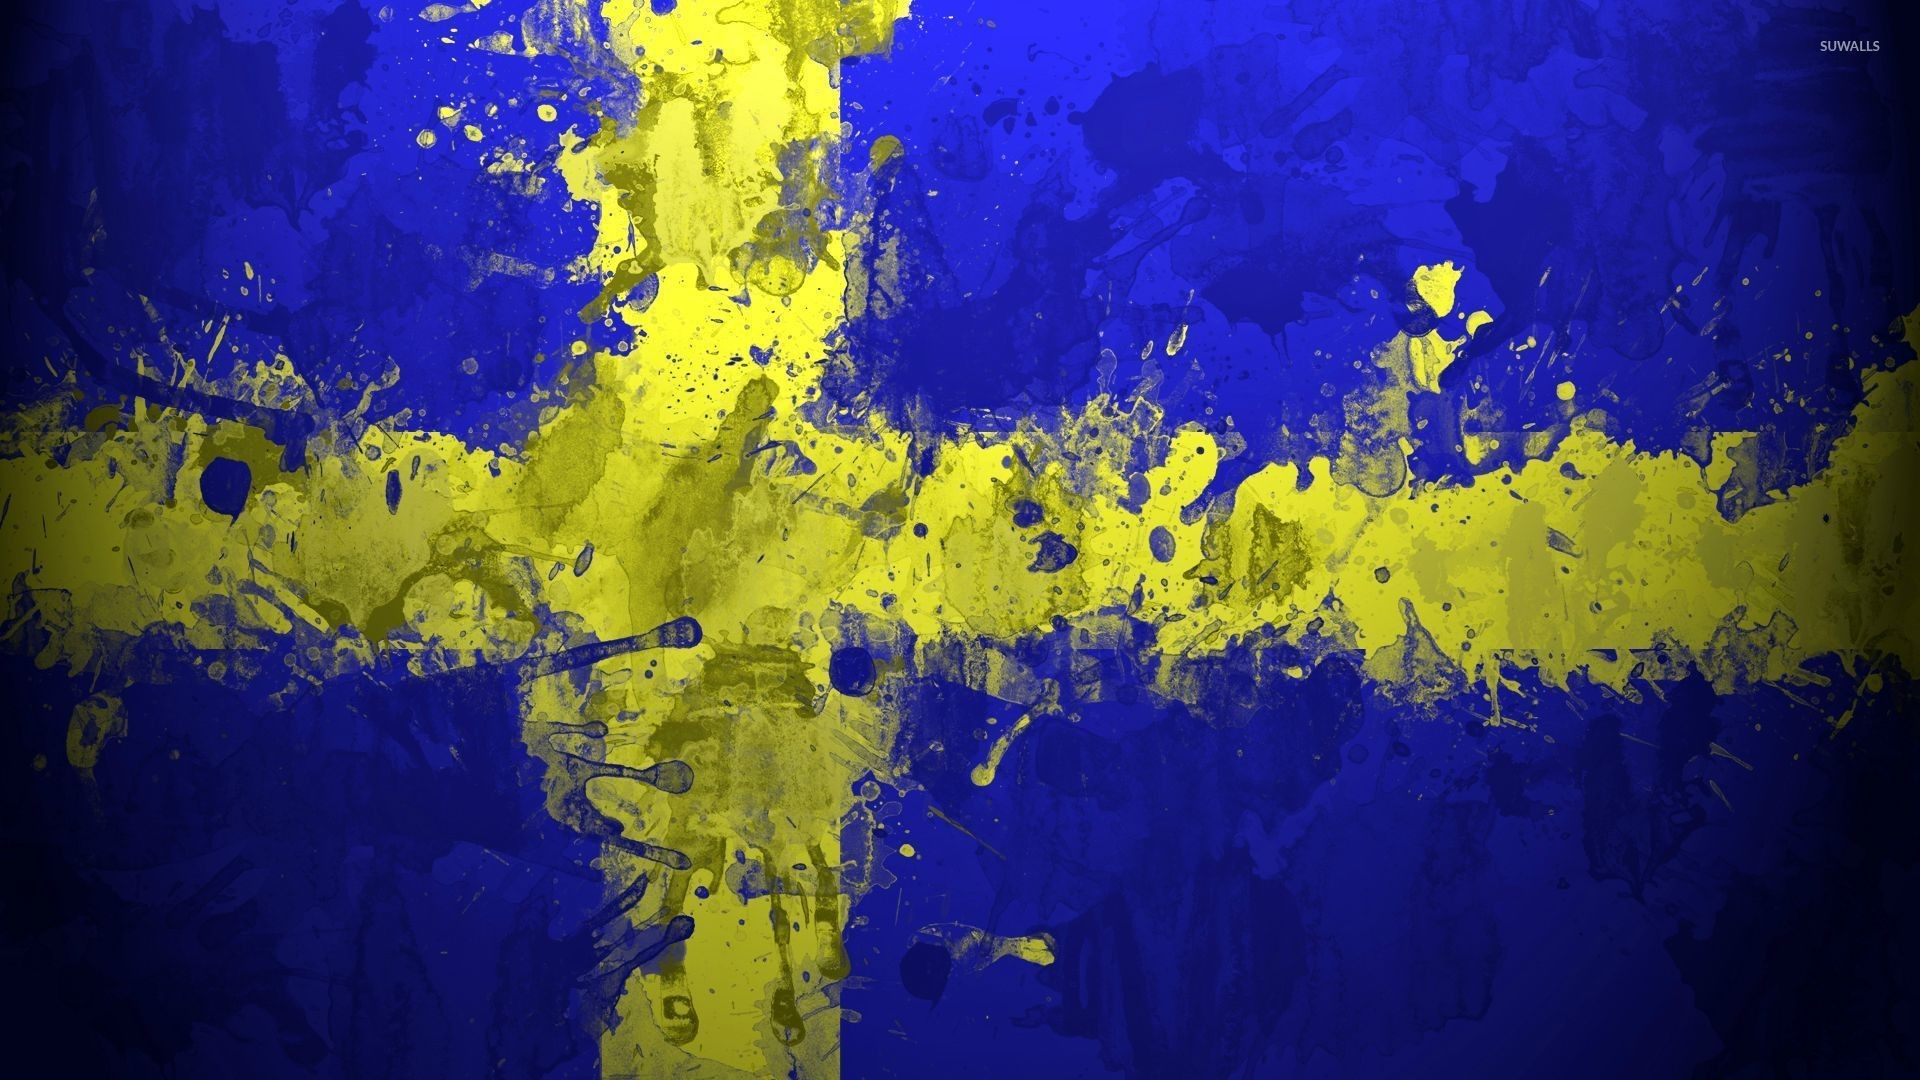 Res: 1920x1080, Paint drops on the flag of Sweden wallpaper  jpg